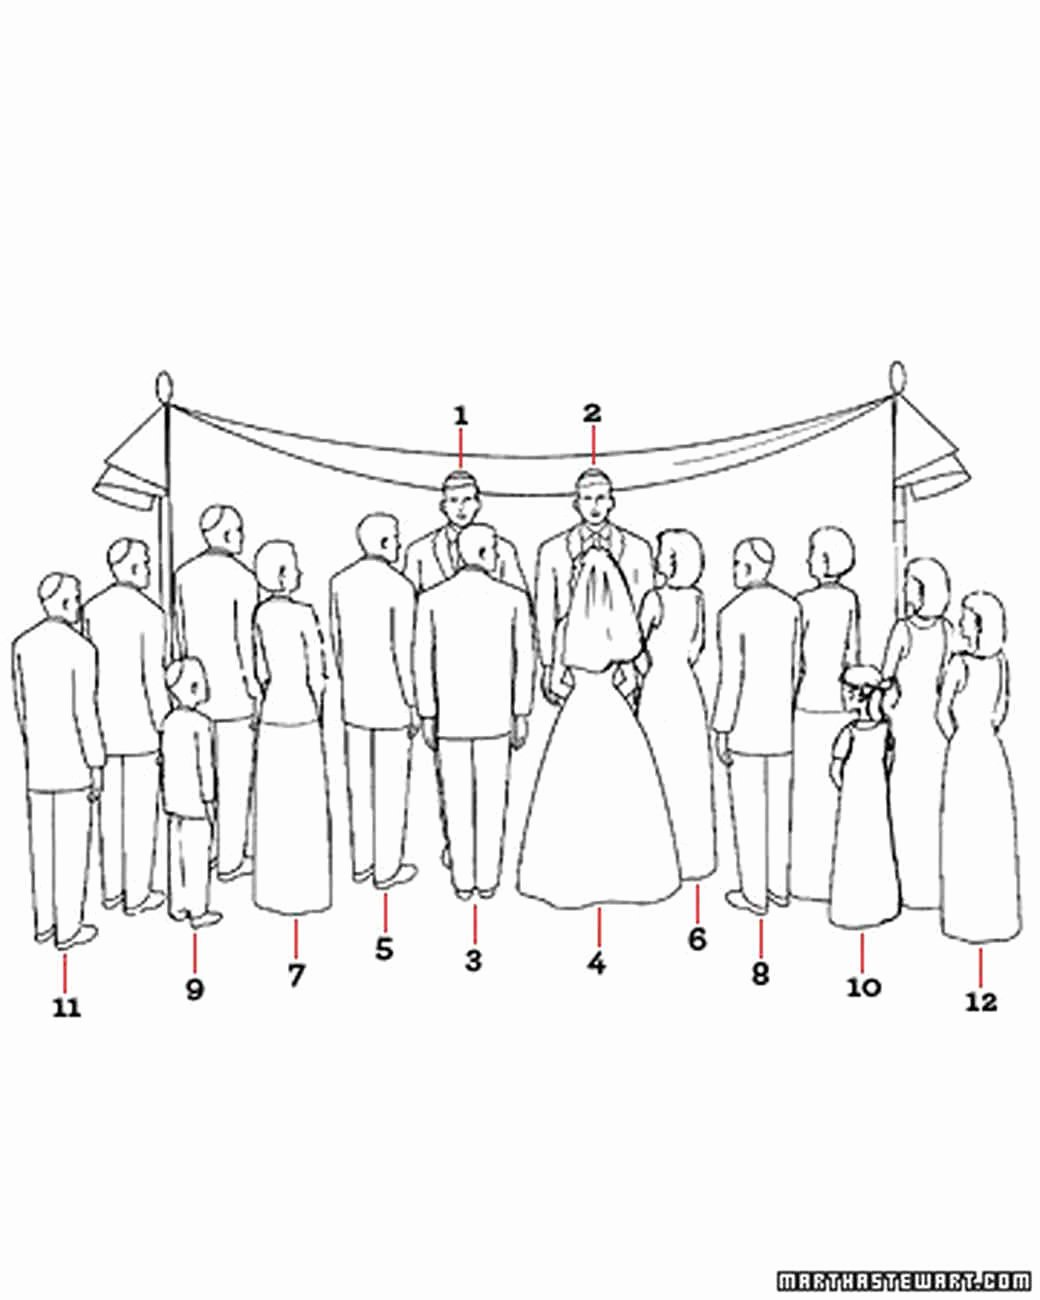 Wedding Party Lineup Template Awesome Diagram Your Big Day Jewish Wedding Ceremony Basics